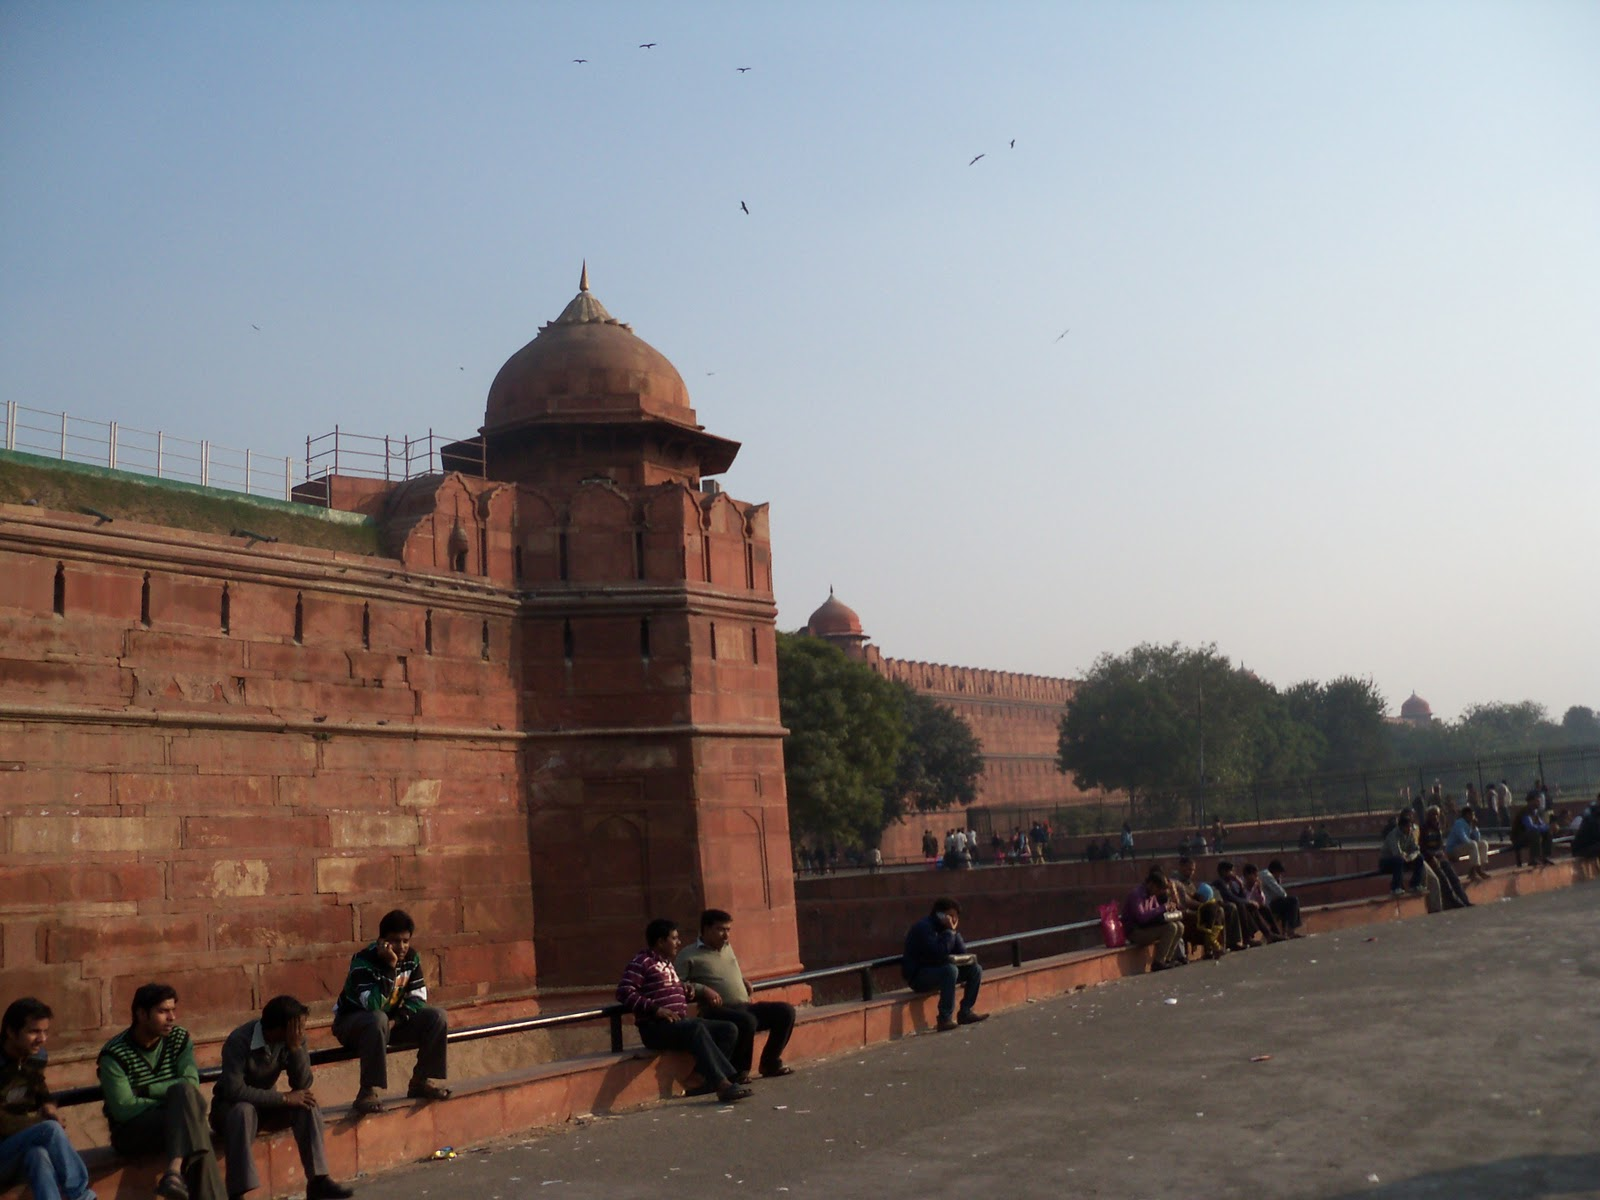 a visit to red fort Red fort is one of the most celebrated monuments of india be it architecture or  history, red fort's rich heritage makes it a must visit place for.